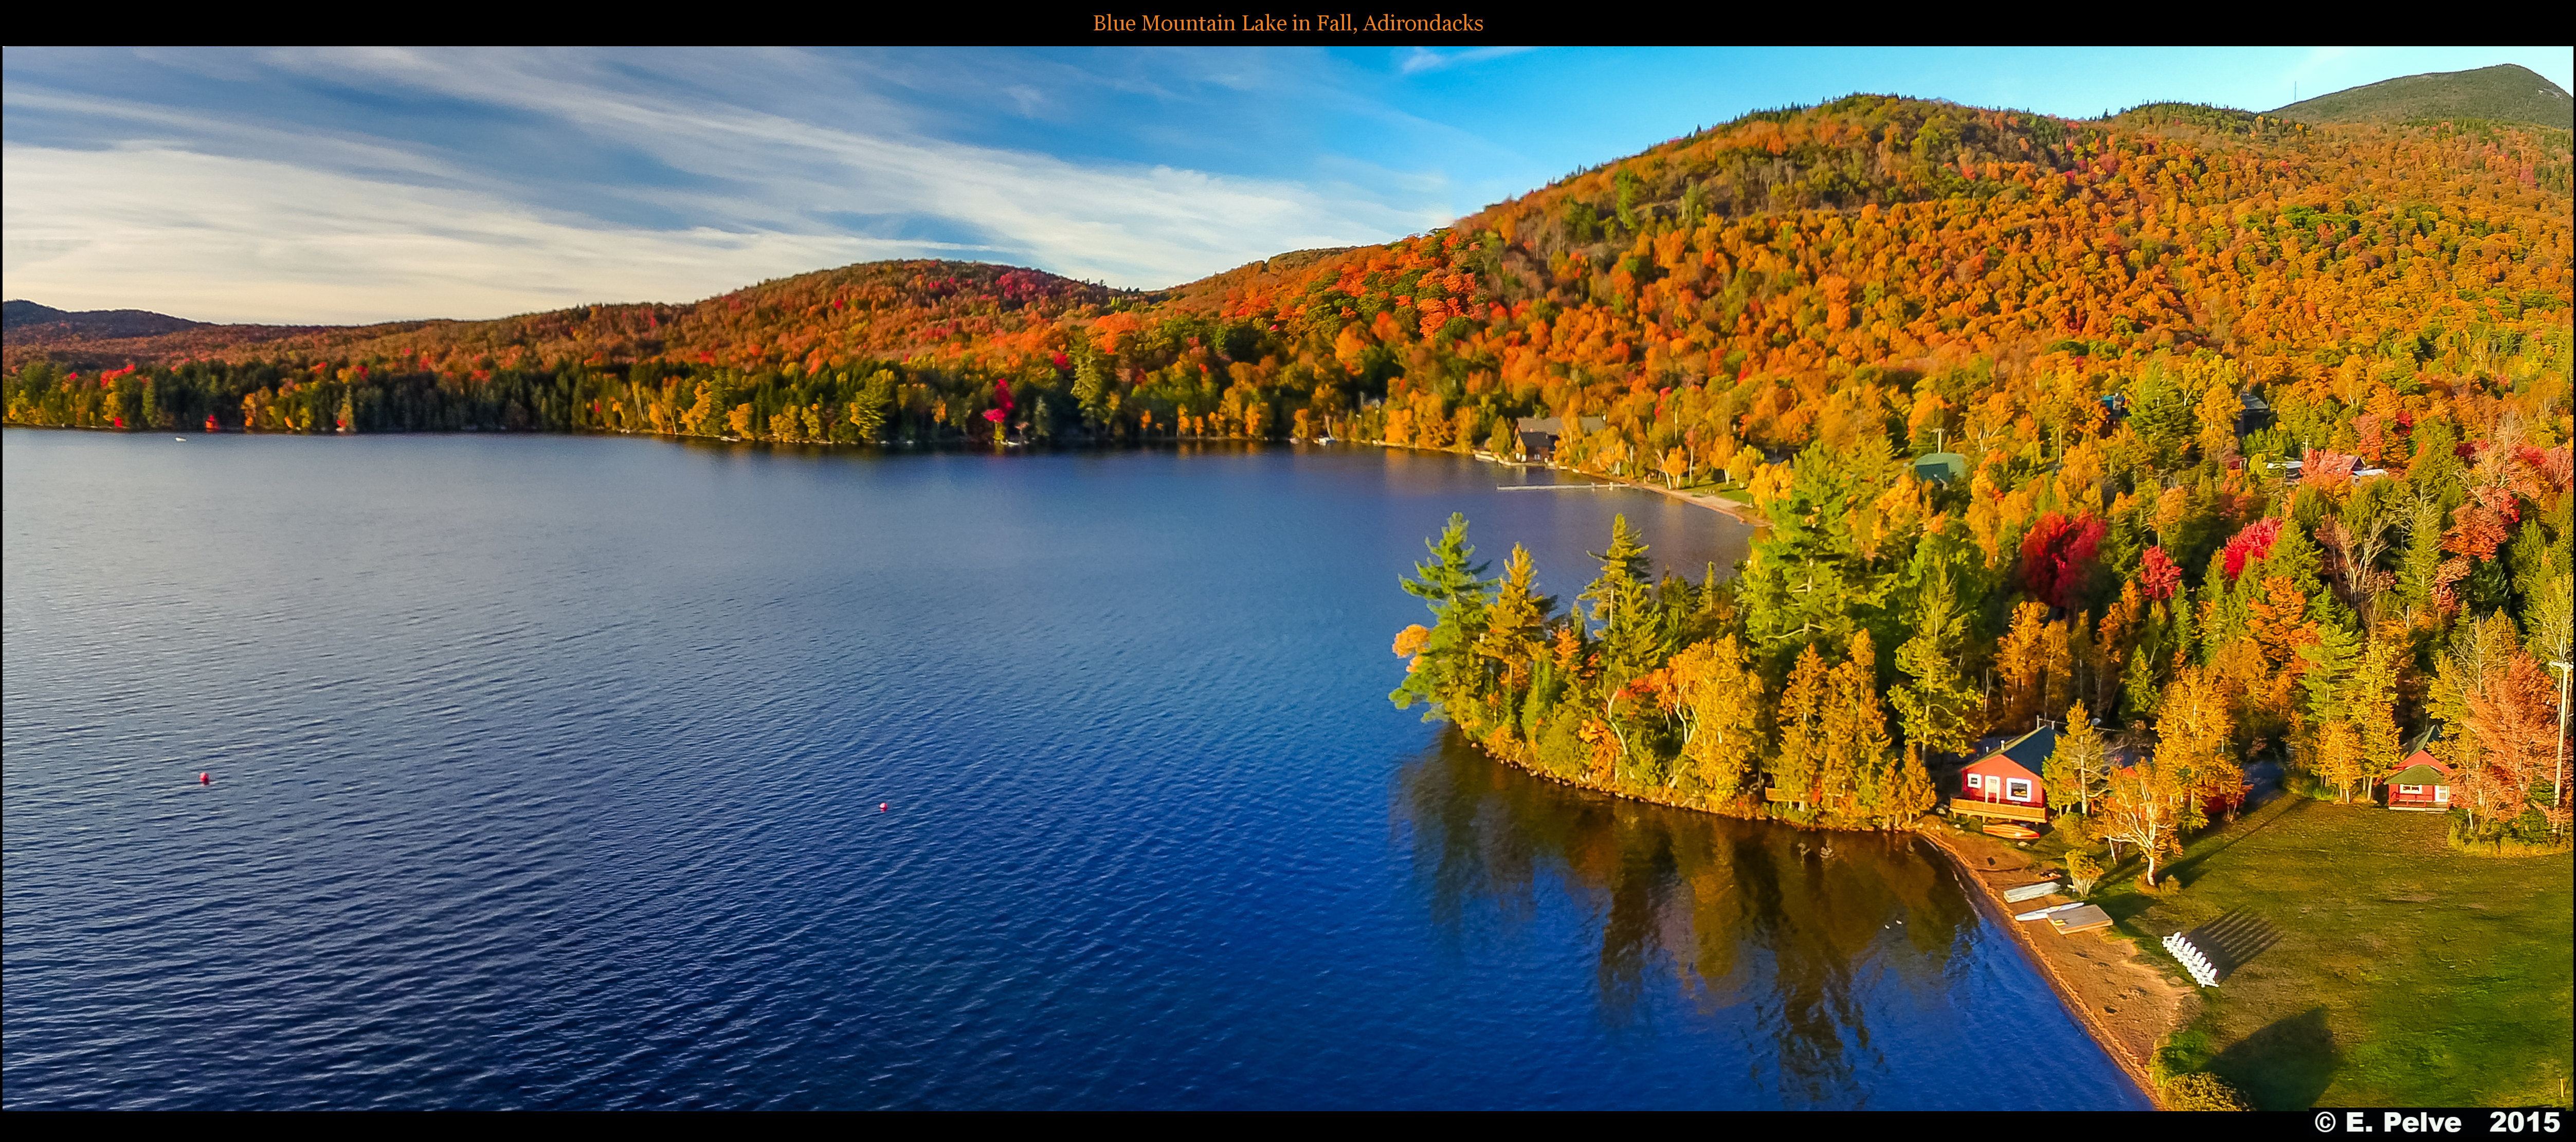 blue mountain lake bbw personals Local news for blue-mountain-lake, ny continually updated from thousands of sources on the web.